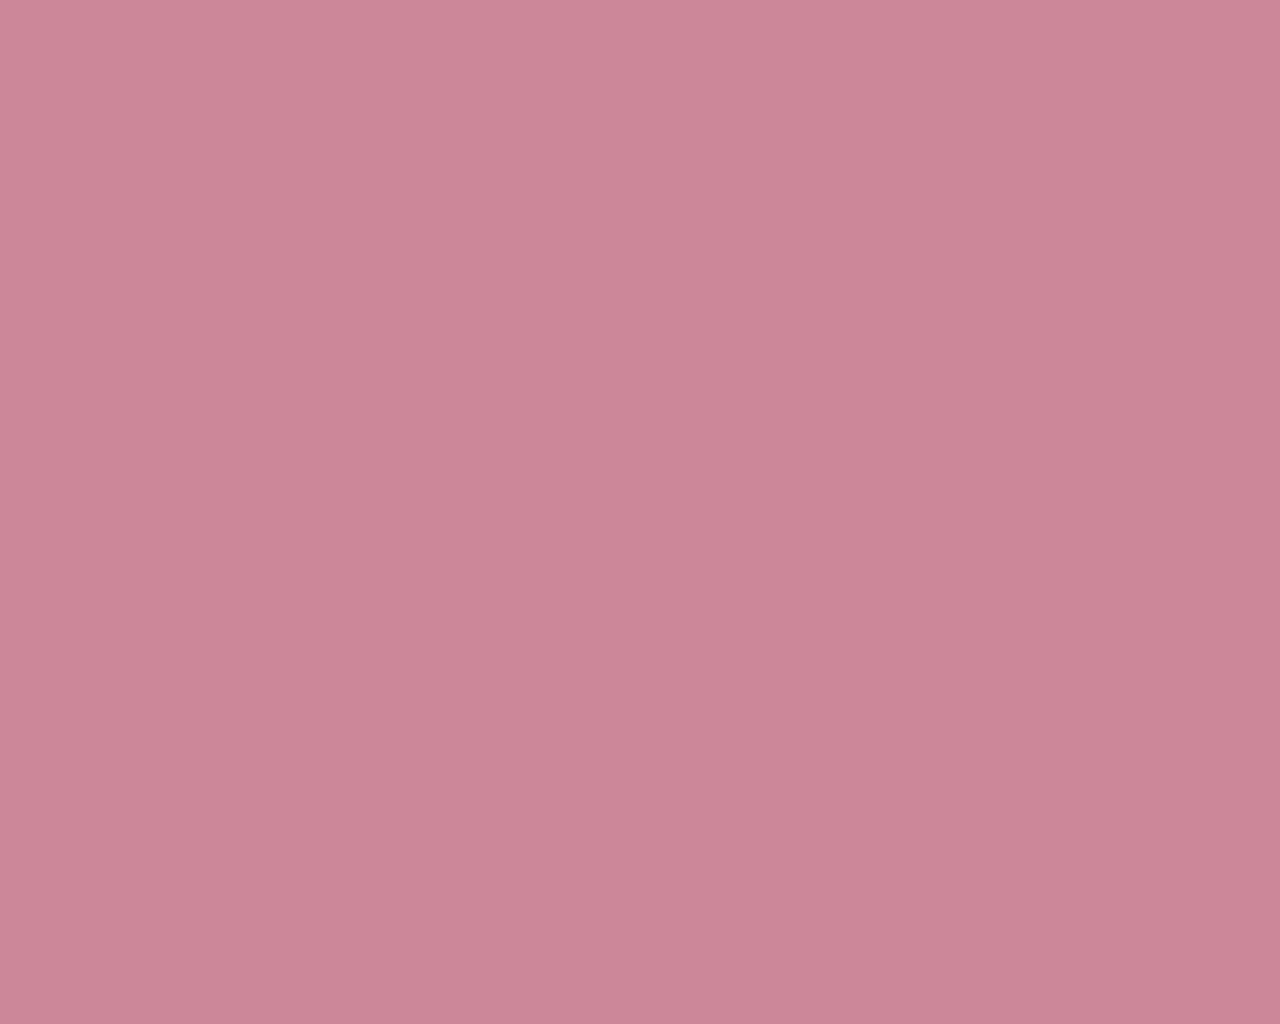 1280x1024 Puce Solid Color Background